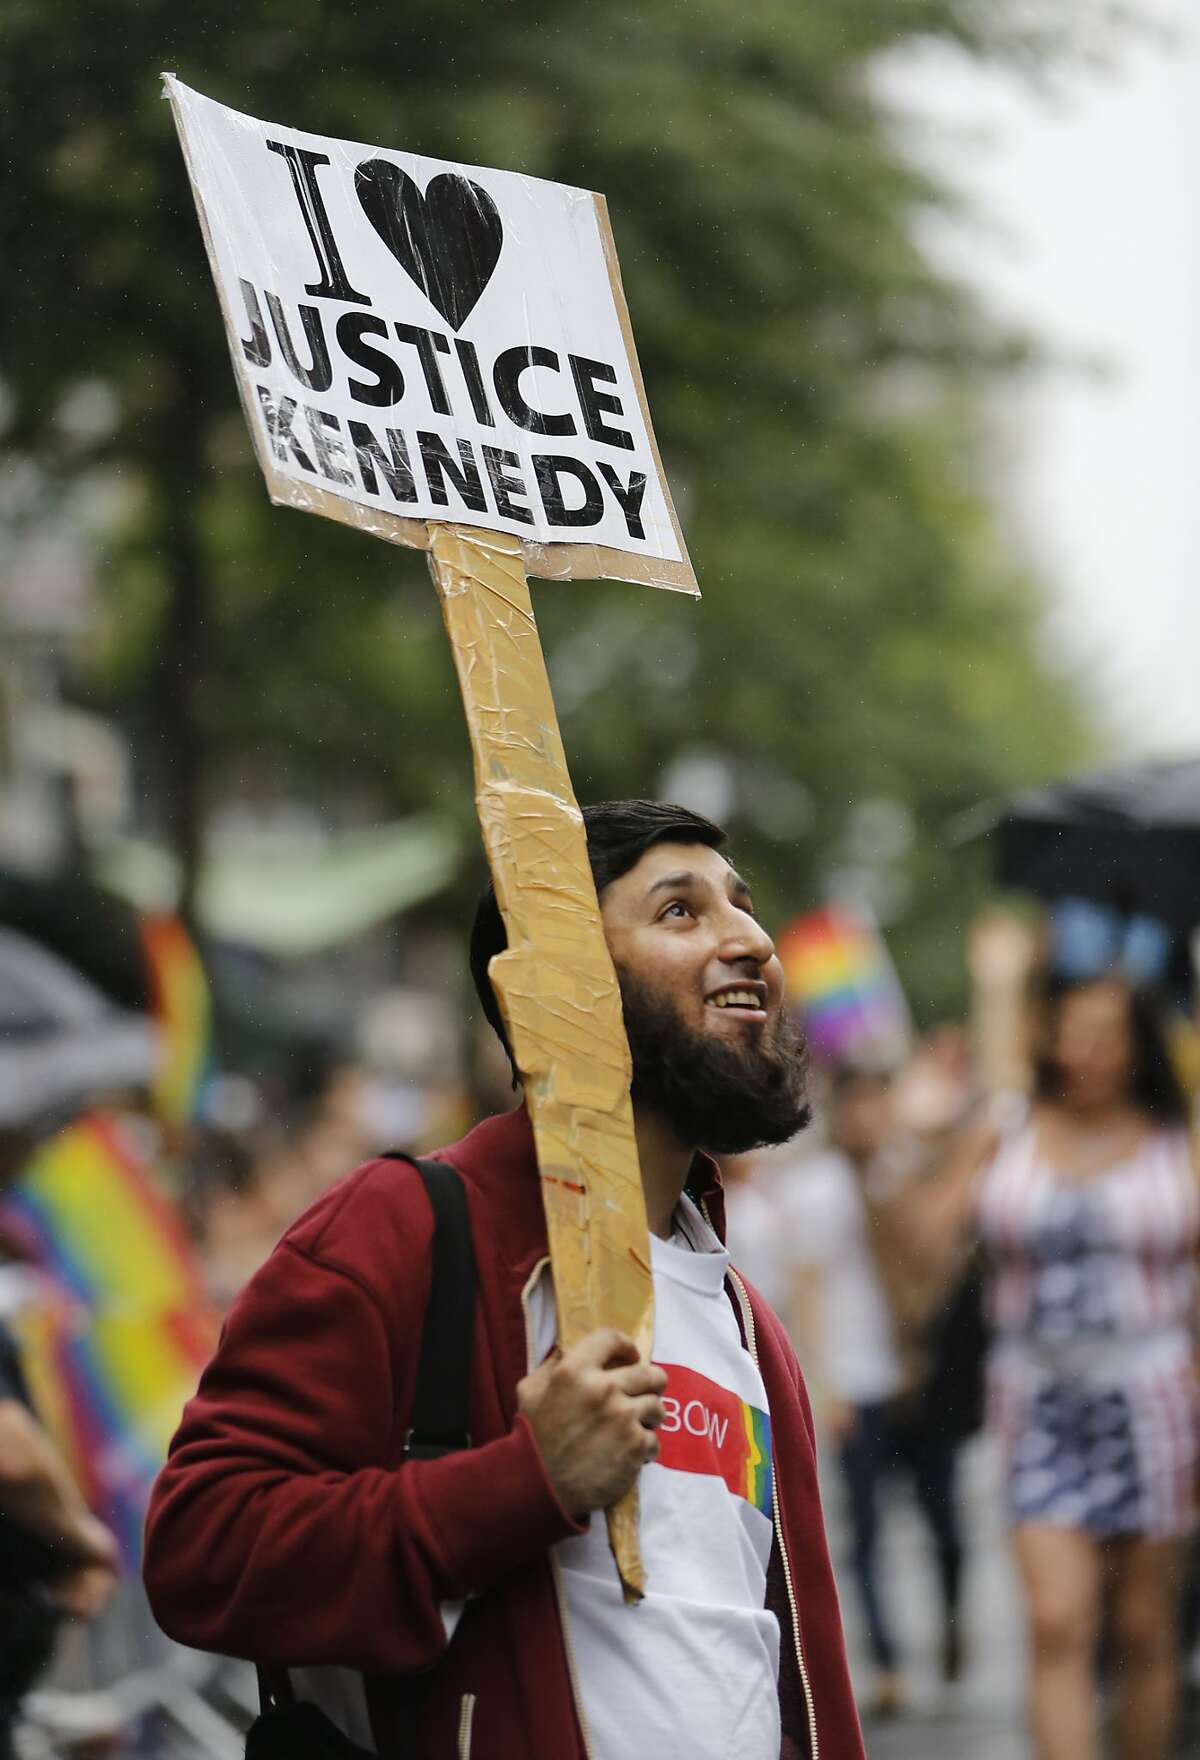 Indian immigrant Anan Farooqi, who said he is glad he lives in the United States, holds a sign professing his love of Supreme Court Justice Anthony M. Kennedy during the Heritage Pride March in New York, Sunday, June 28, 2015. Large turnouts were expected for gay pride parades across the U.S. following the landmark Supreme Court ruling that said gay couples can marry anywhere in the country. (AP Photo/Kathy Willens)